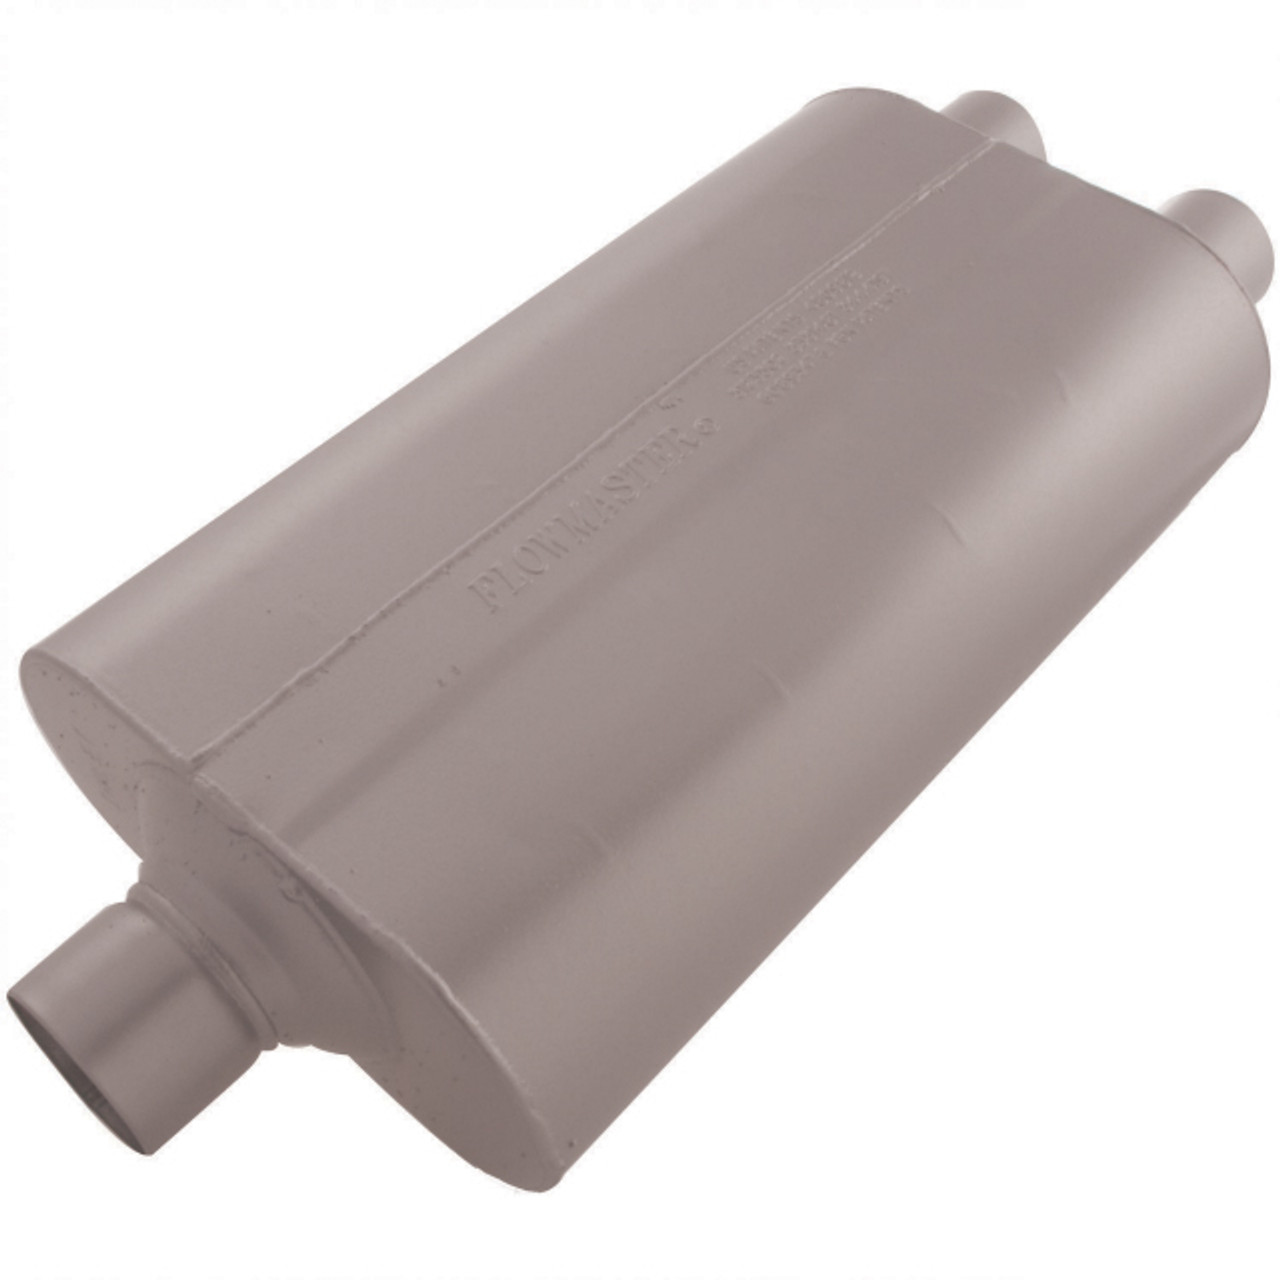 Flowmaster  Super 50 Muffler - 2.50 Center In / 2.25 Dual Out